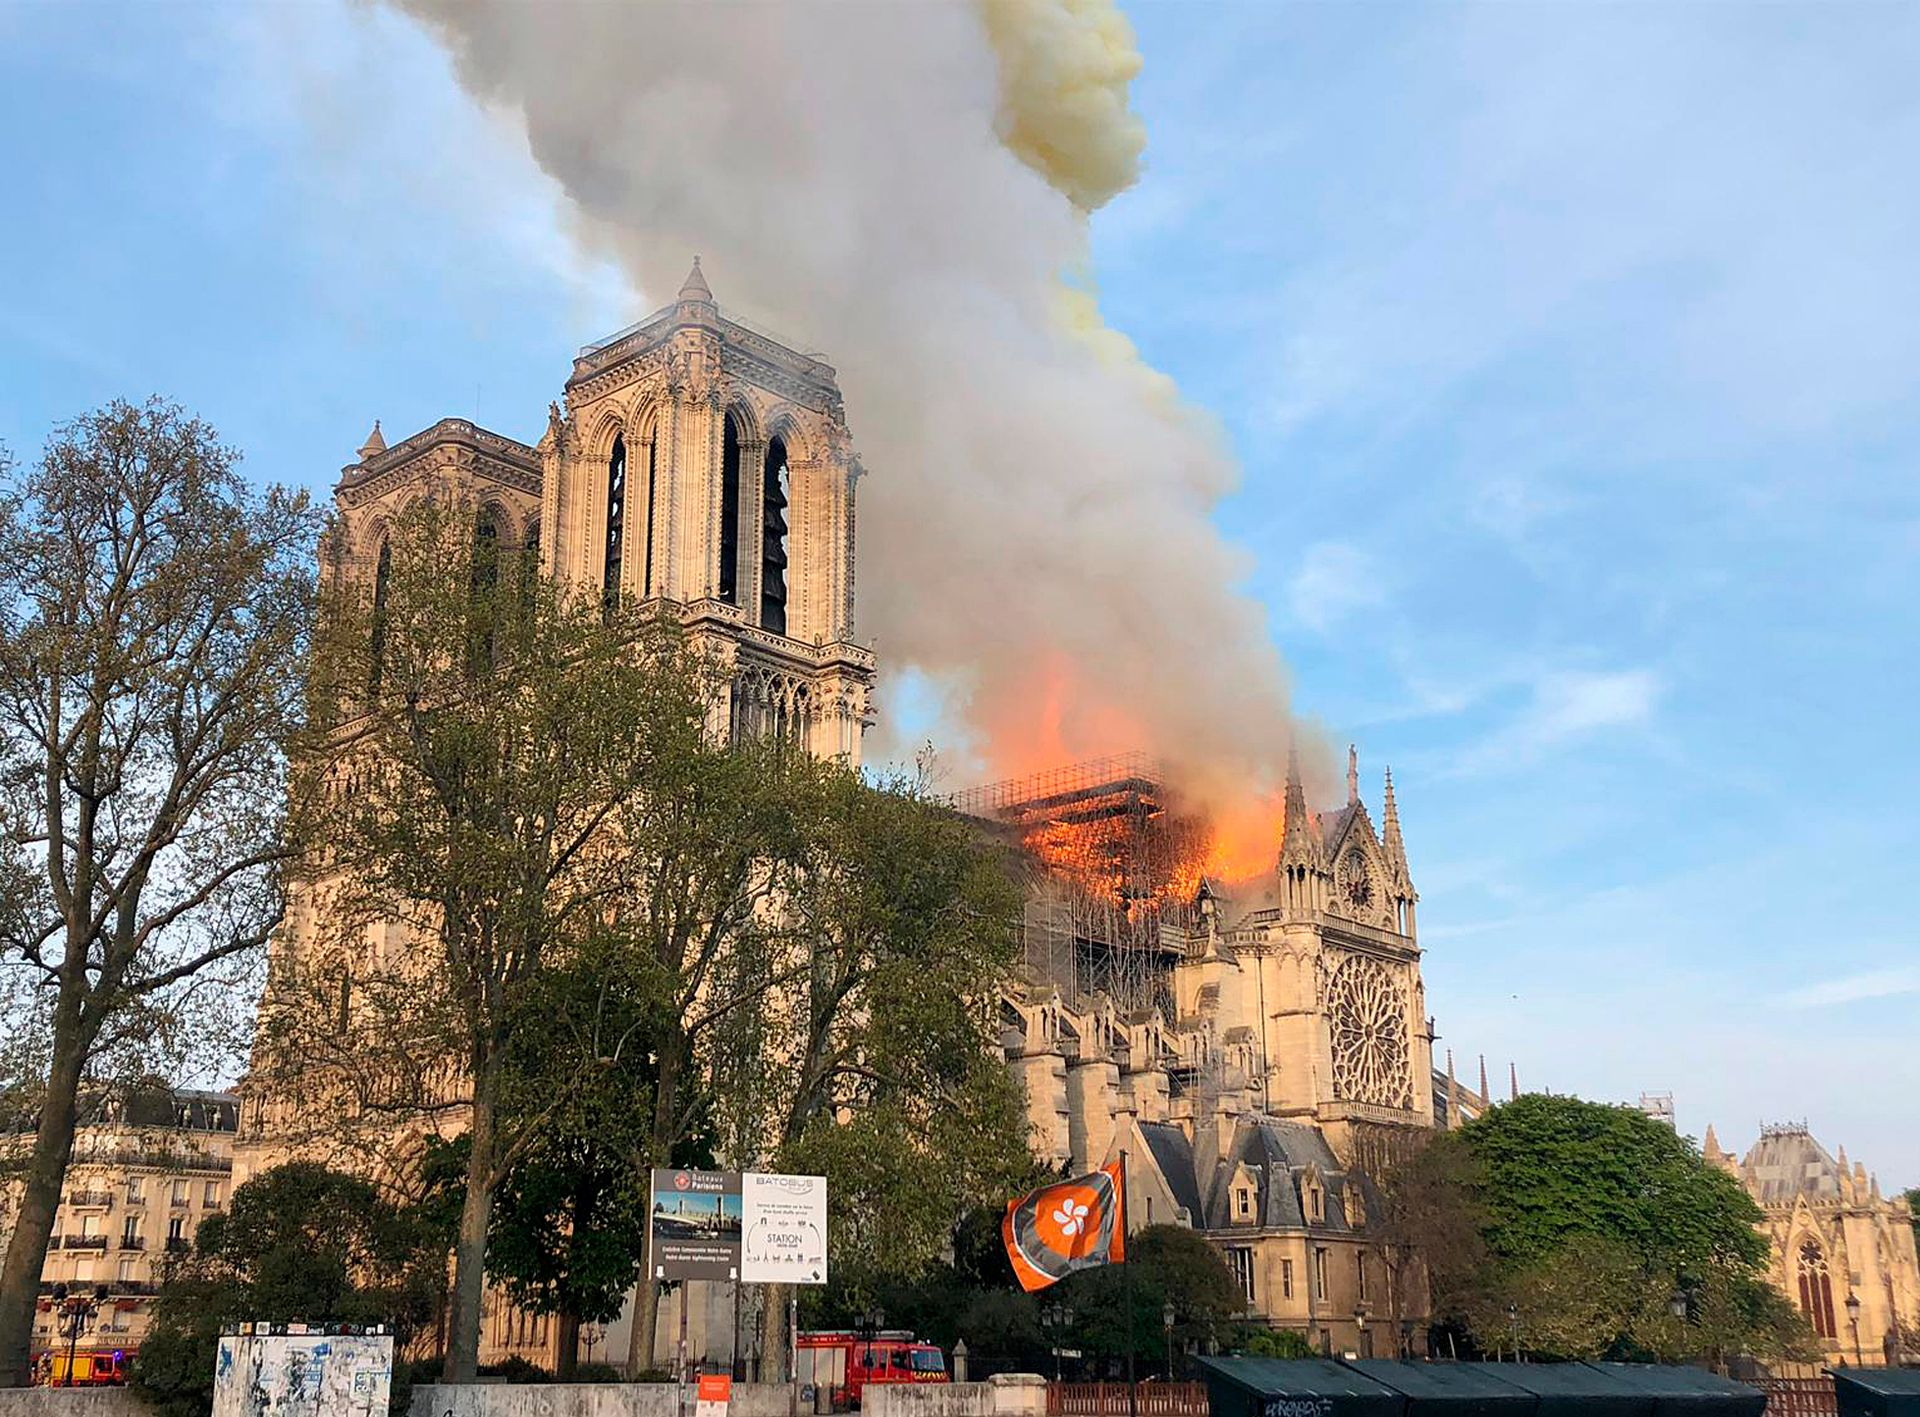 Plumes of smoke fill the air from a fire at Notre Dame Cathedral in Paris © AP Photo